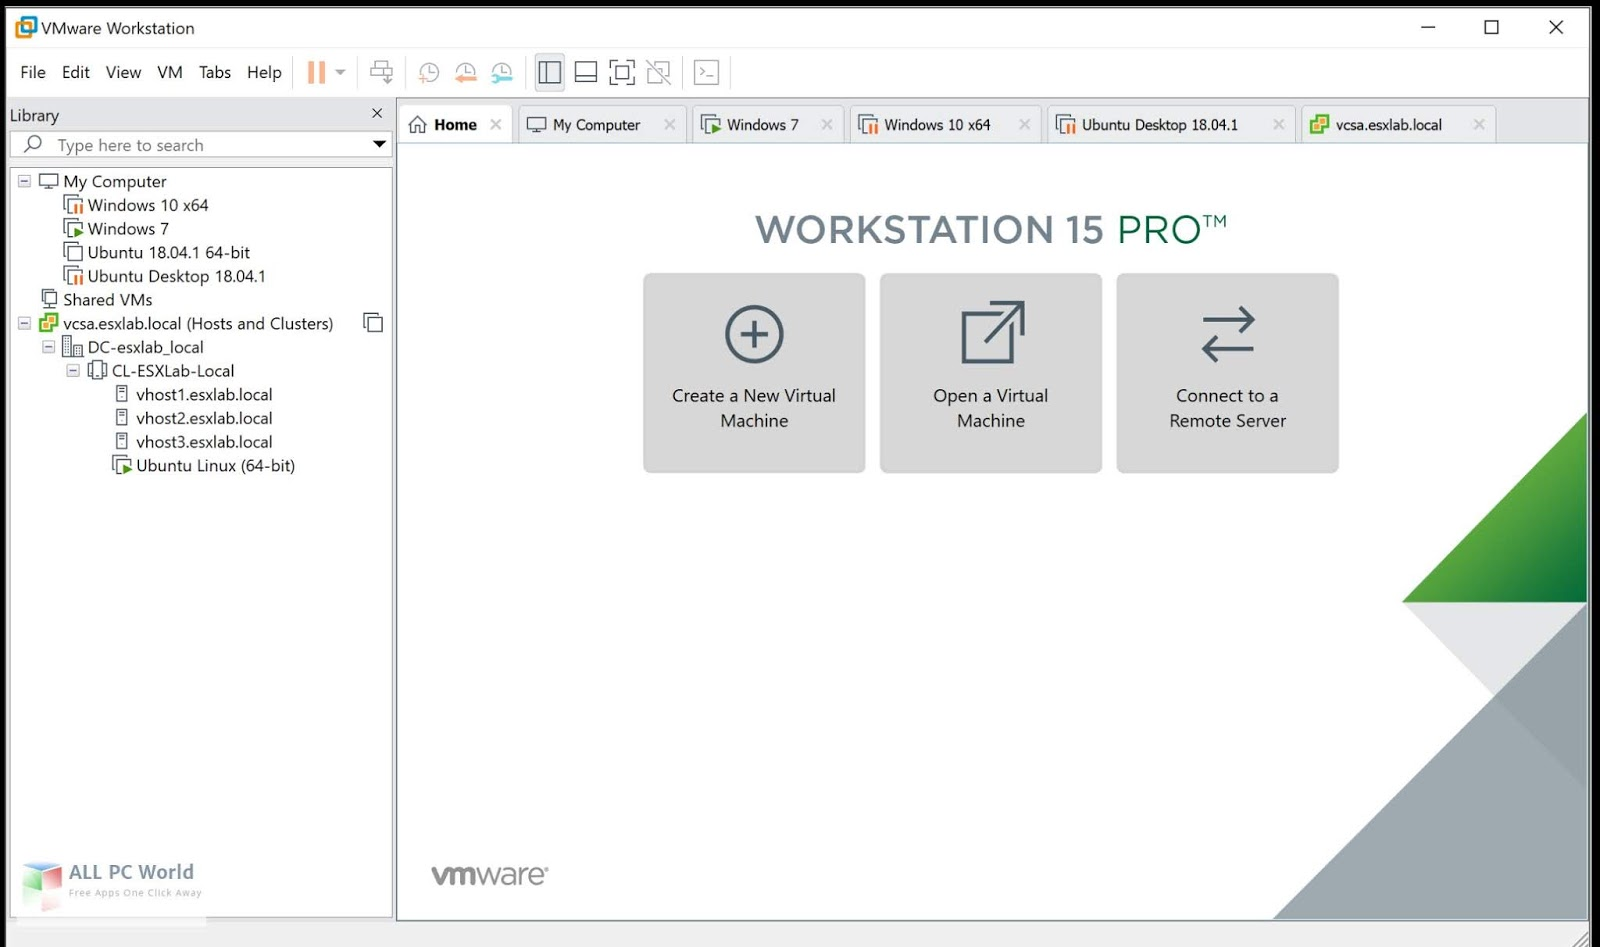 HAXOR NOX: VMware Workstation Pro 15 0 2 Free Download with Player